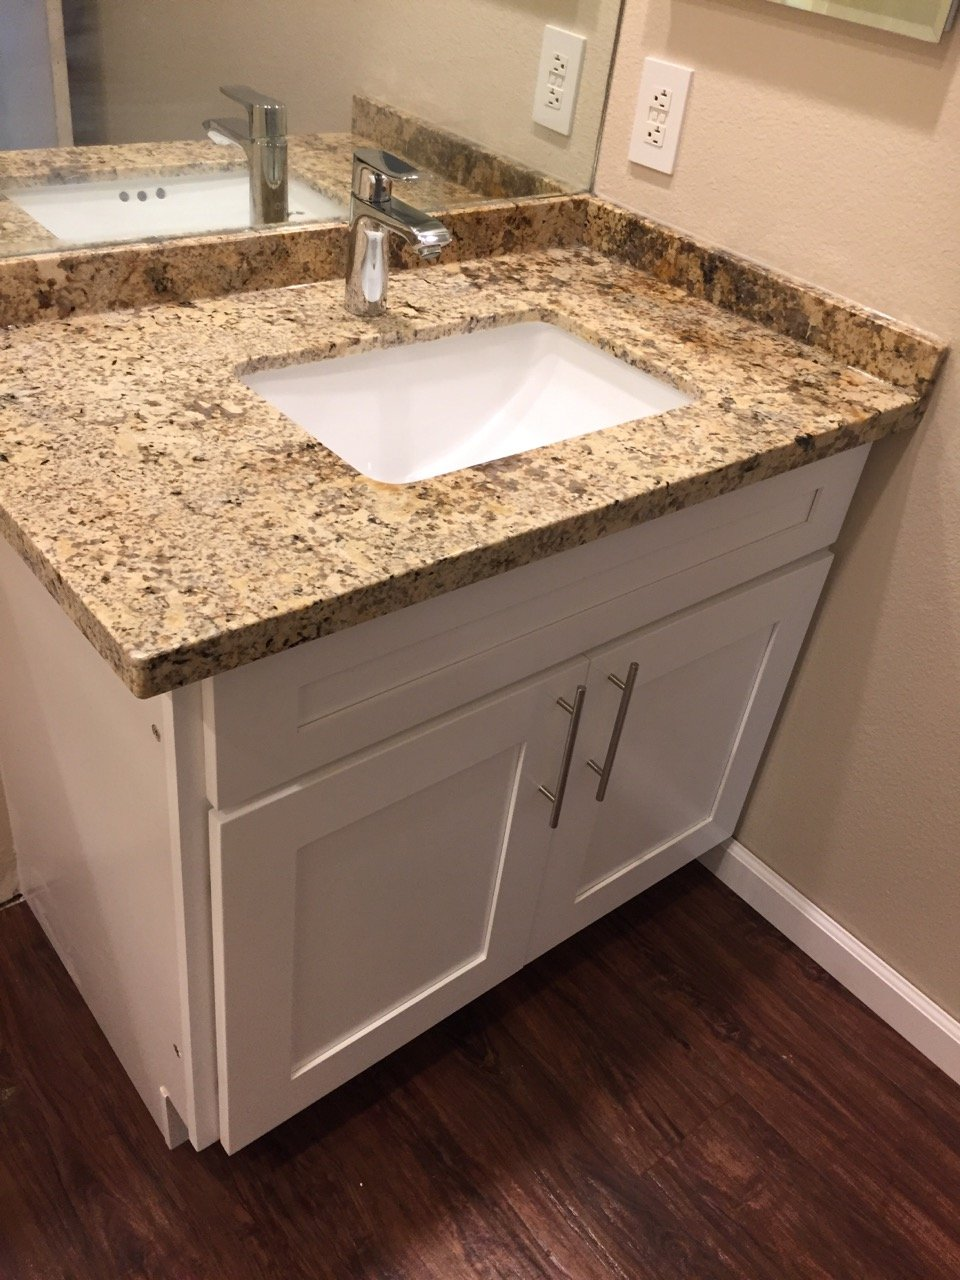 Top 5 Benefits Of Quartz Countertops Caa Hawaii Cabinet